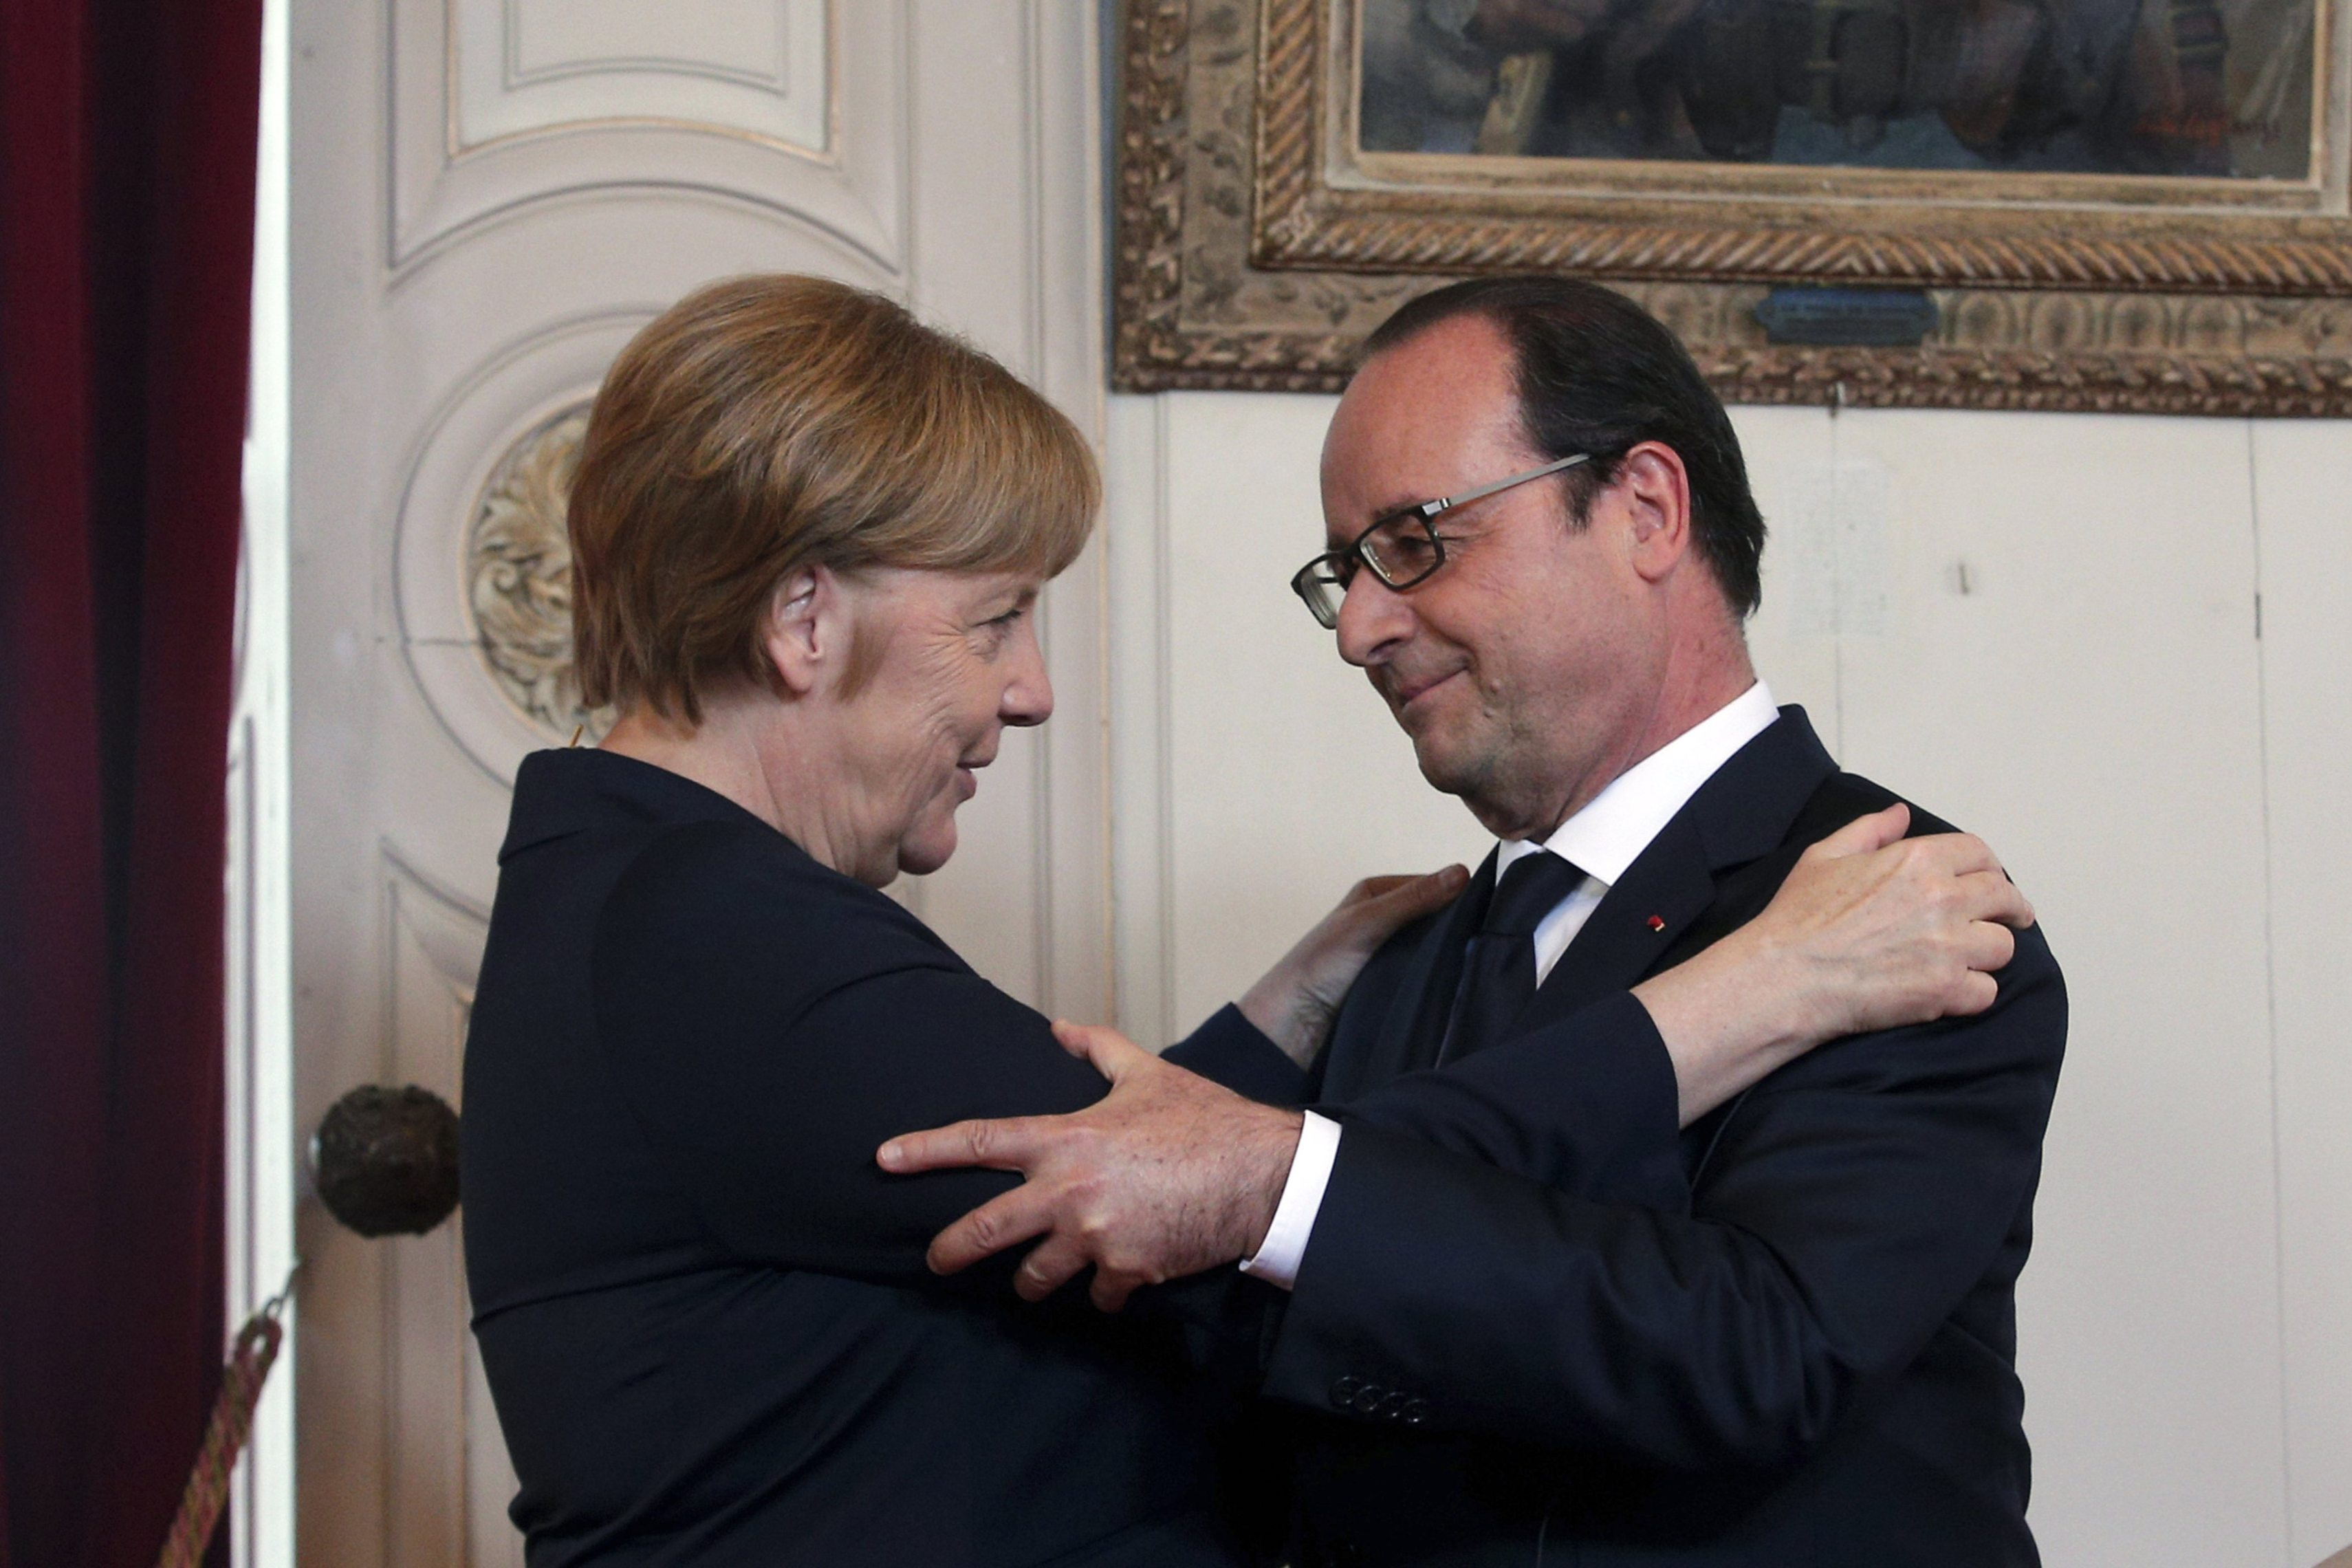 Merkel and Hollande in 'full agreement' on how to handle Brexit